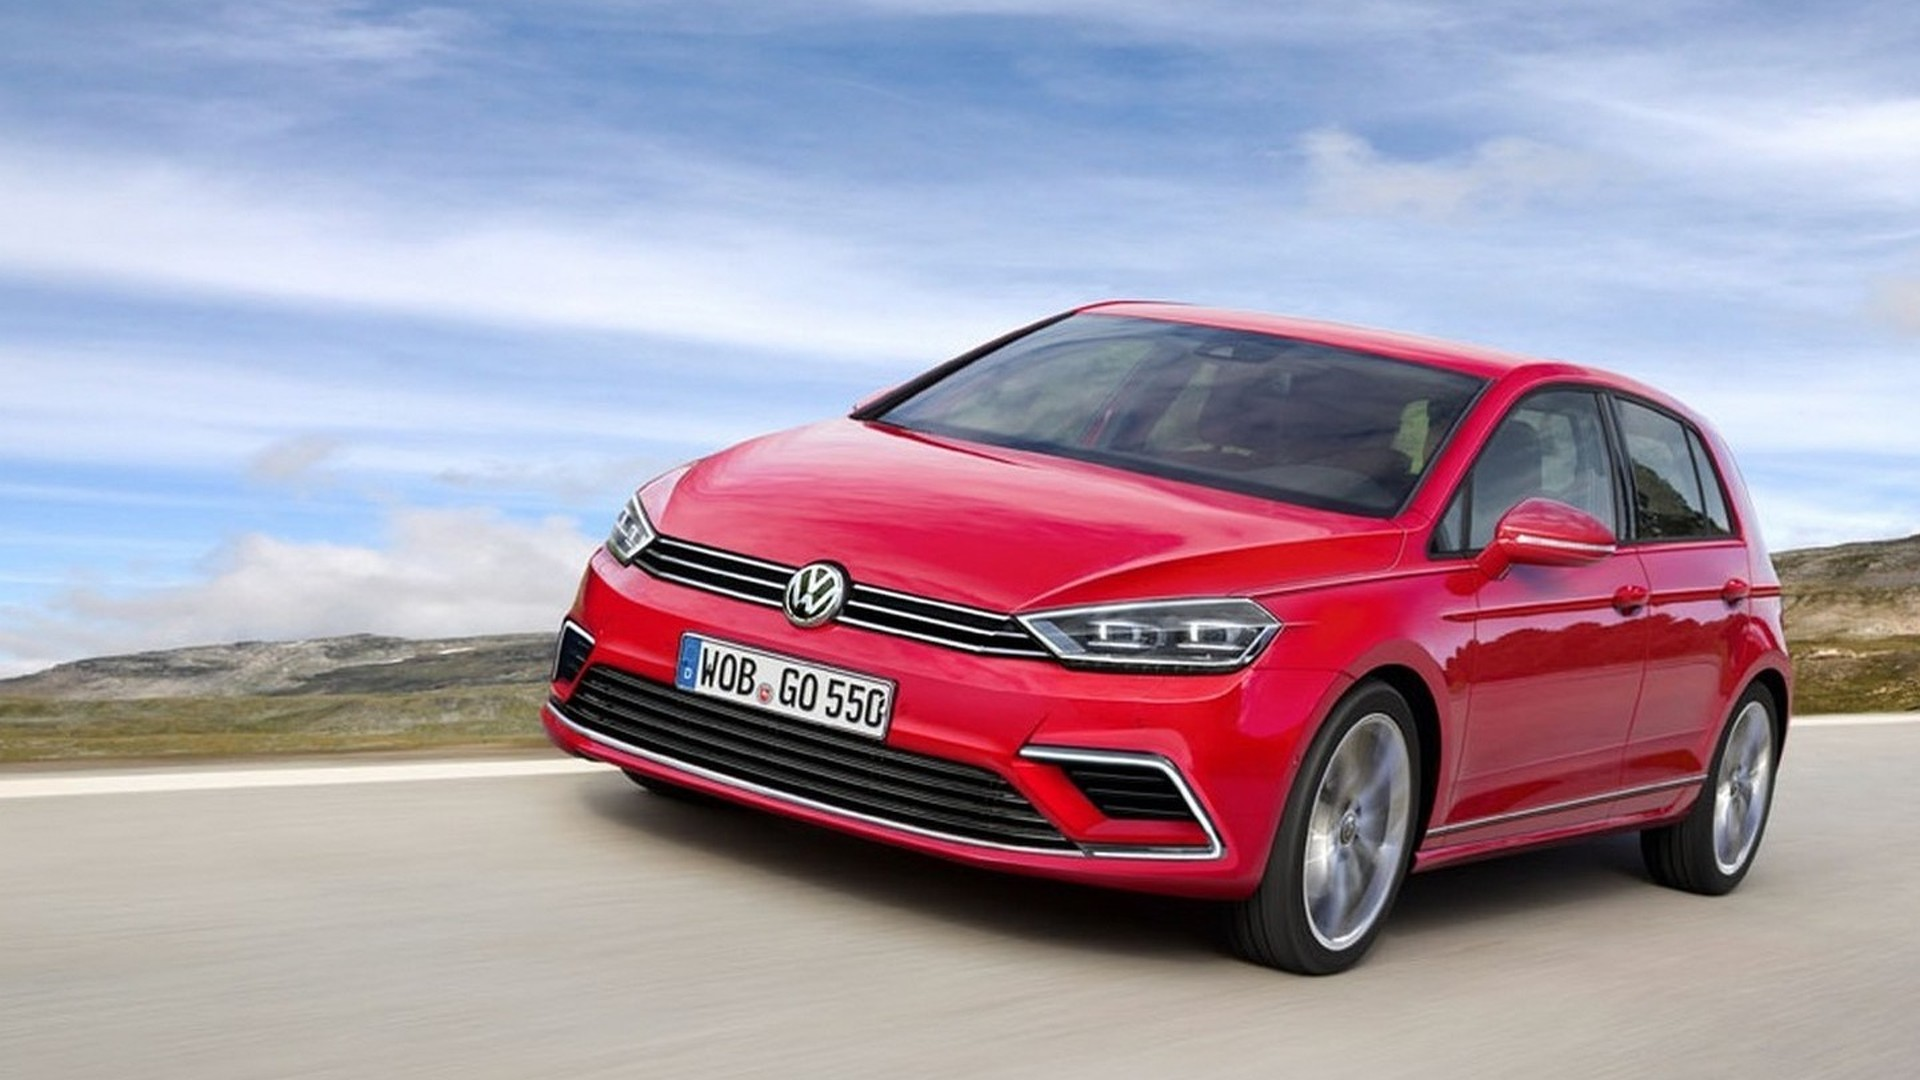 volkswagen golf viii rendered ahead of late 2016 launch. Black Bedroom Furniture Sets. Home Design Ideas